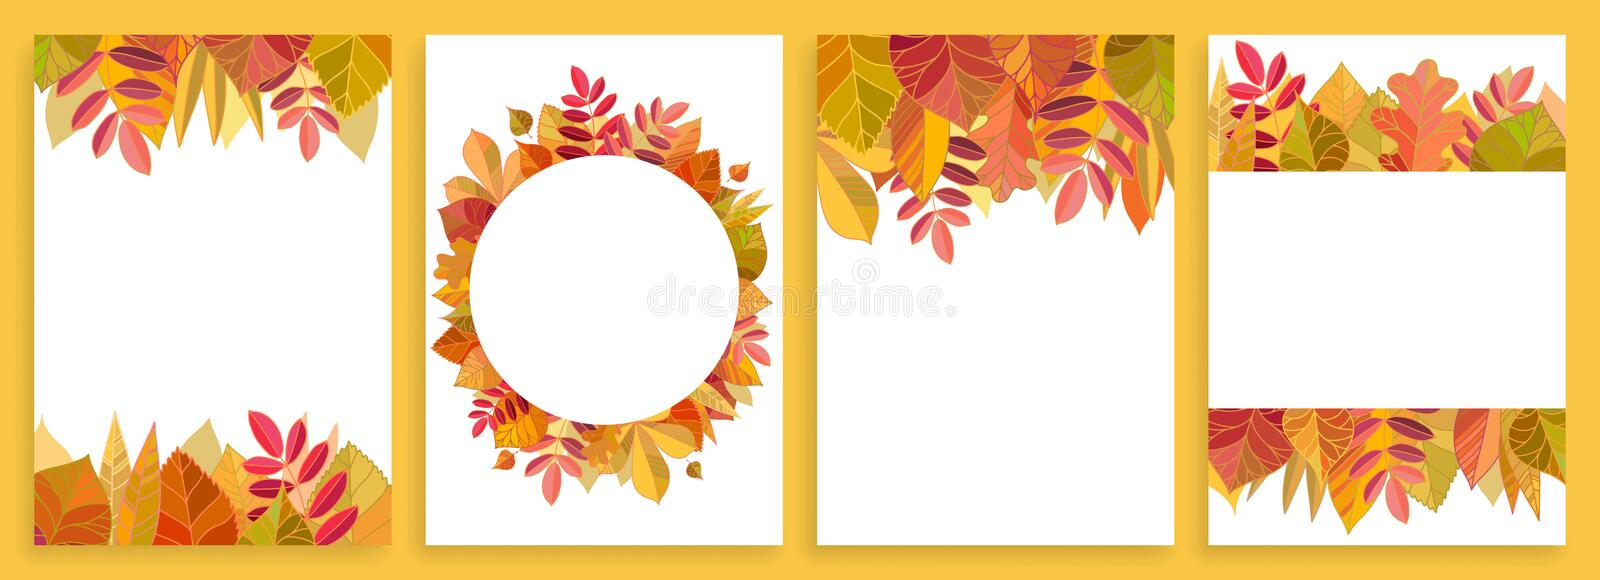 Set of card templates with autumn leaves. stock illustration